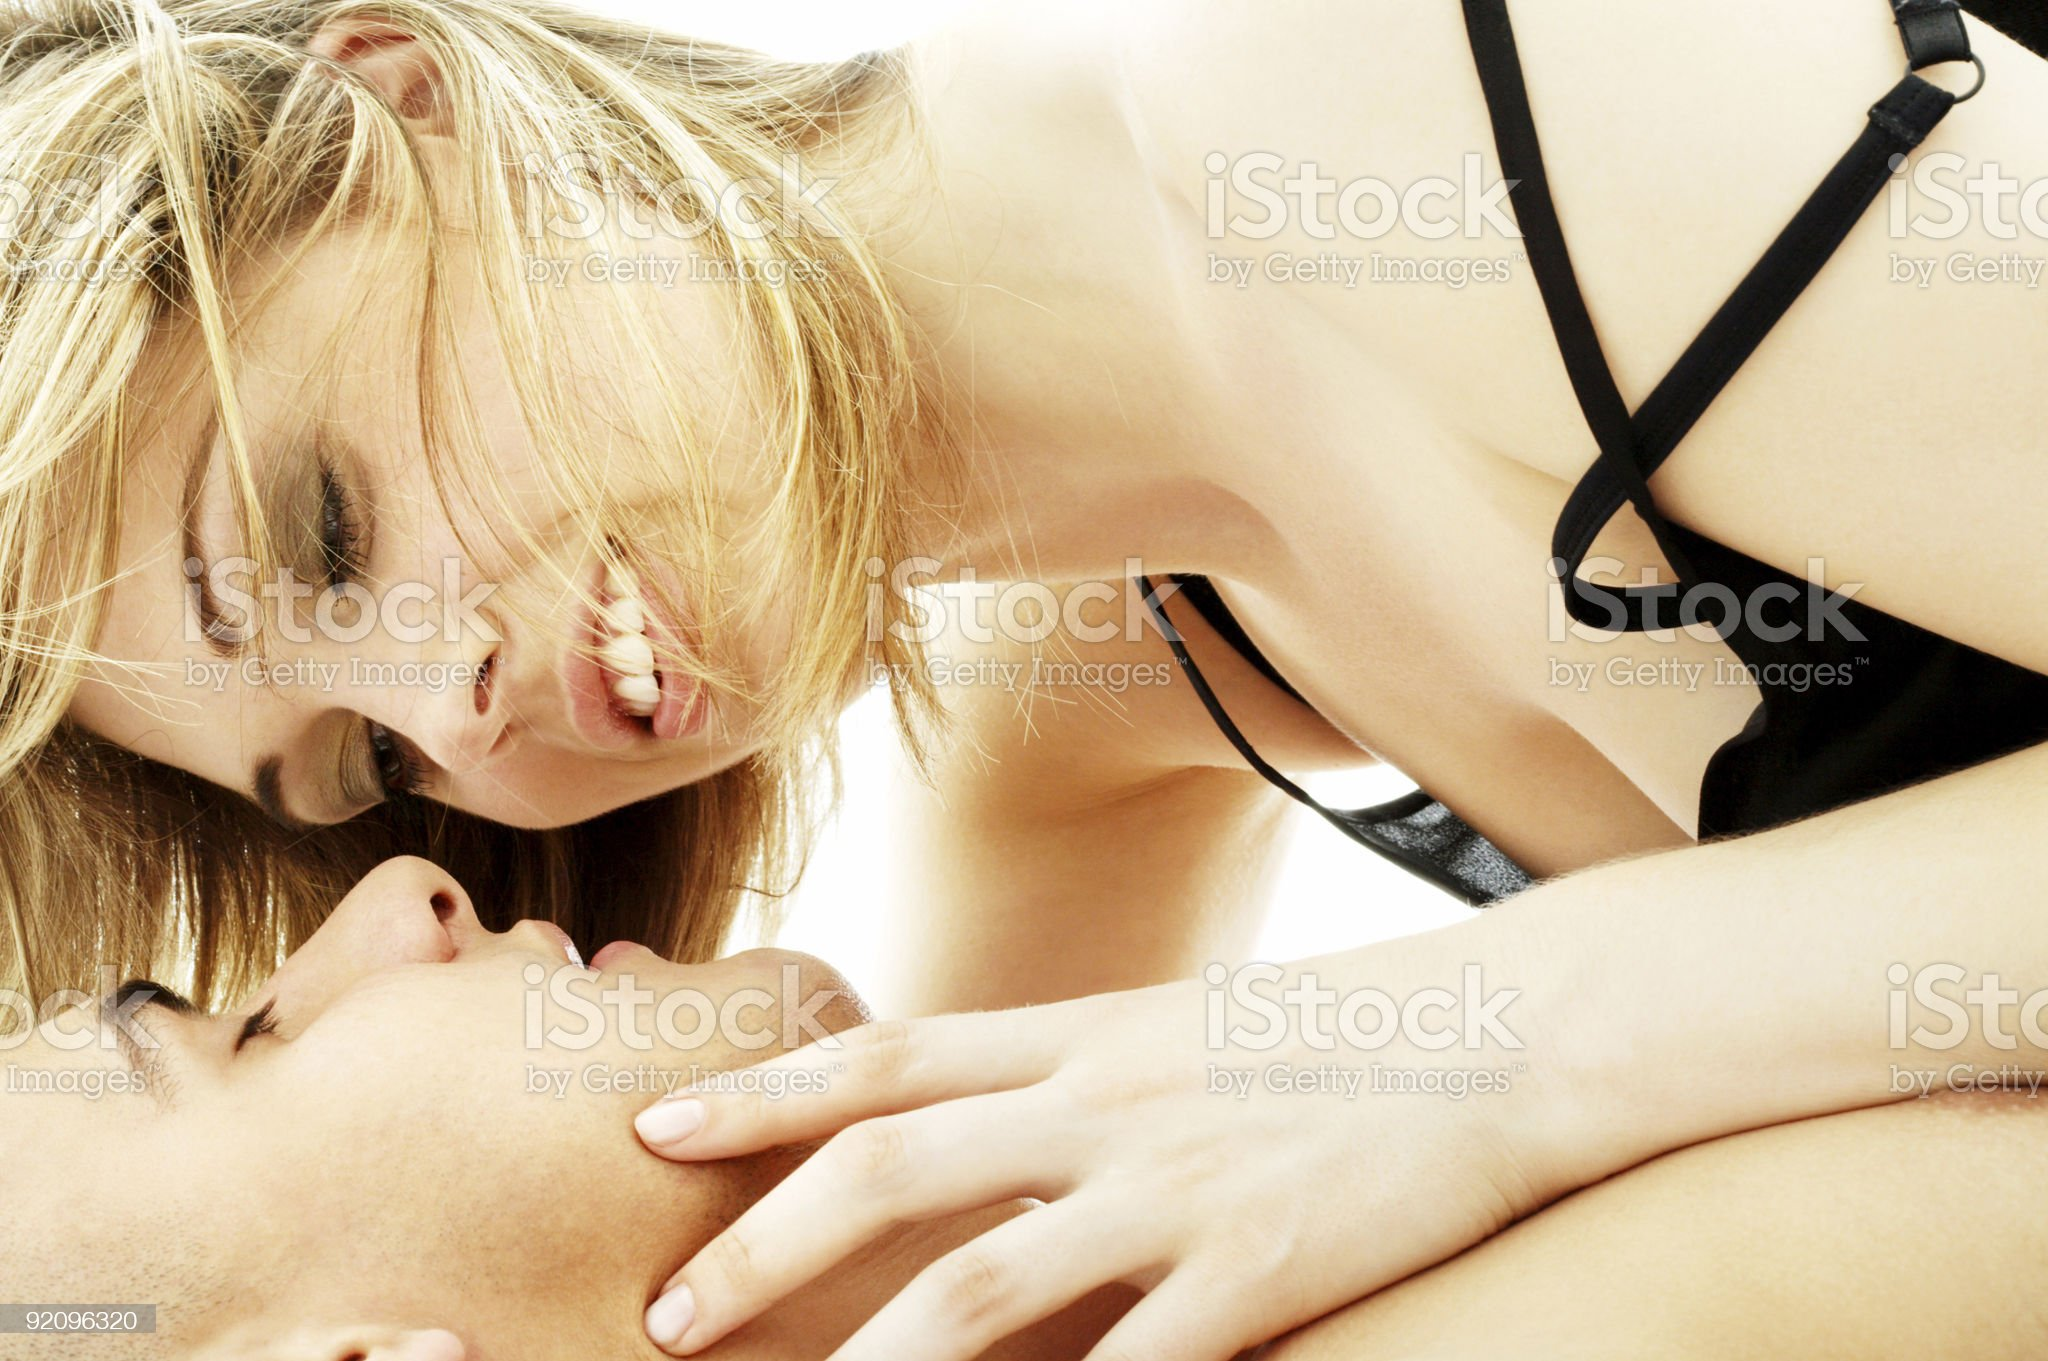 couple foreplay royalty-free stock photo